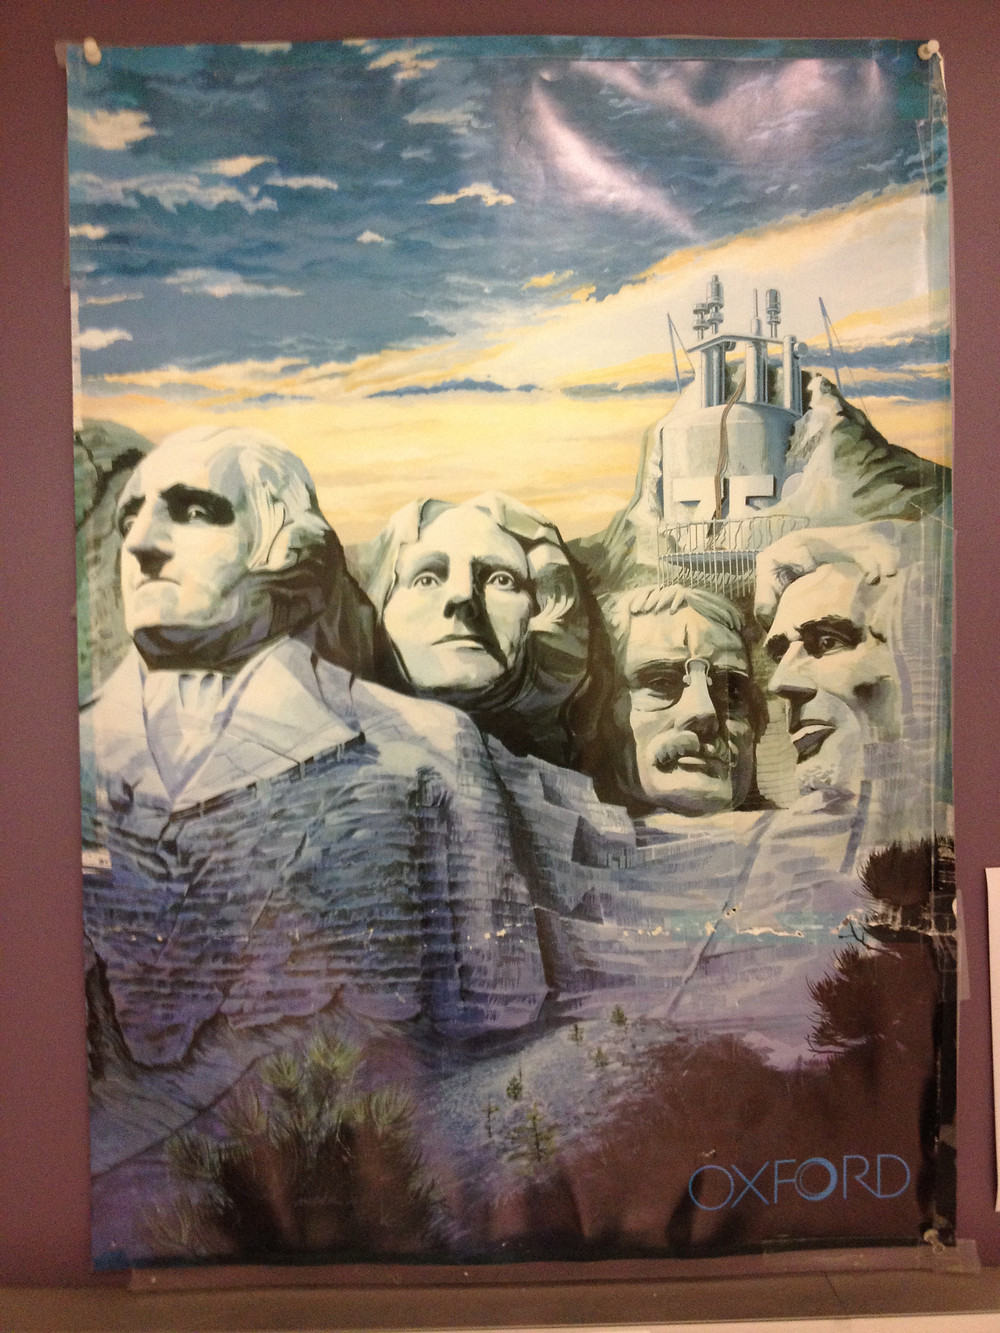 vintage Oxford Instruments promotional poster_Mt. Rushmore